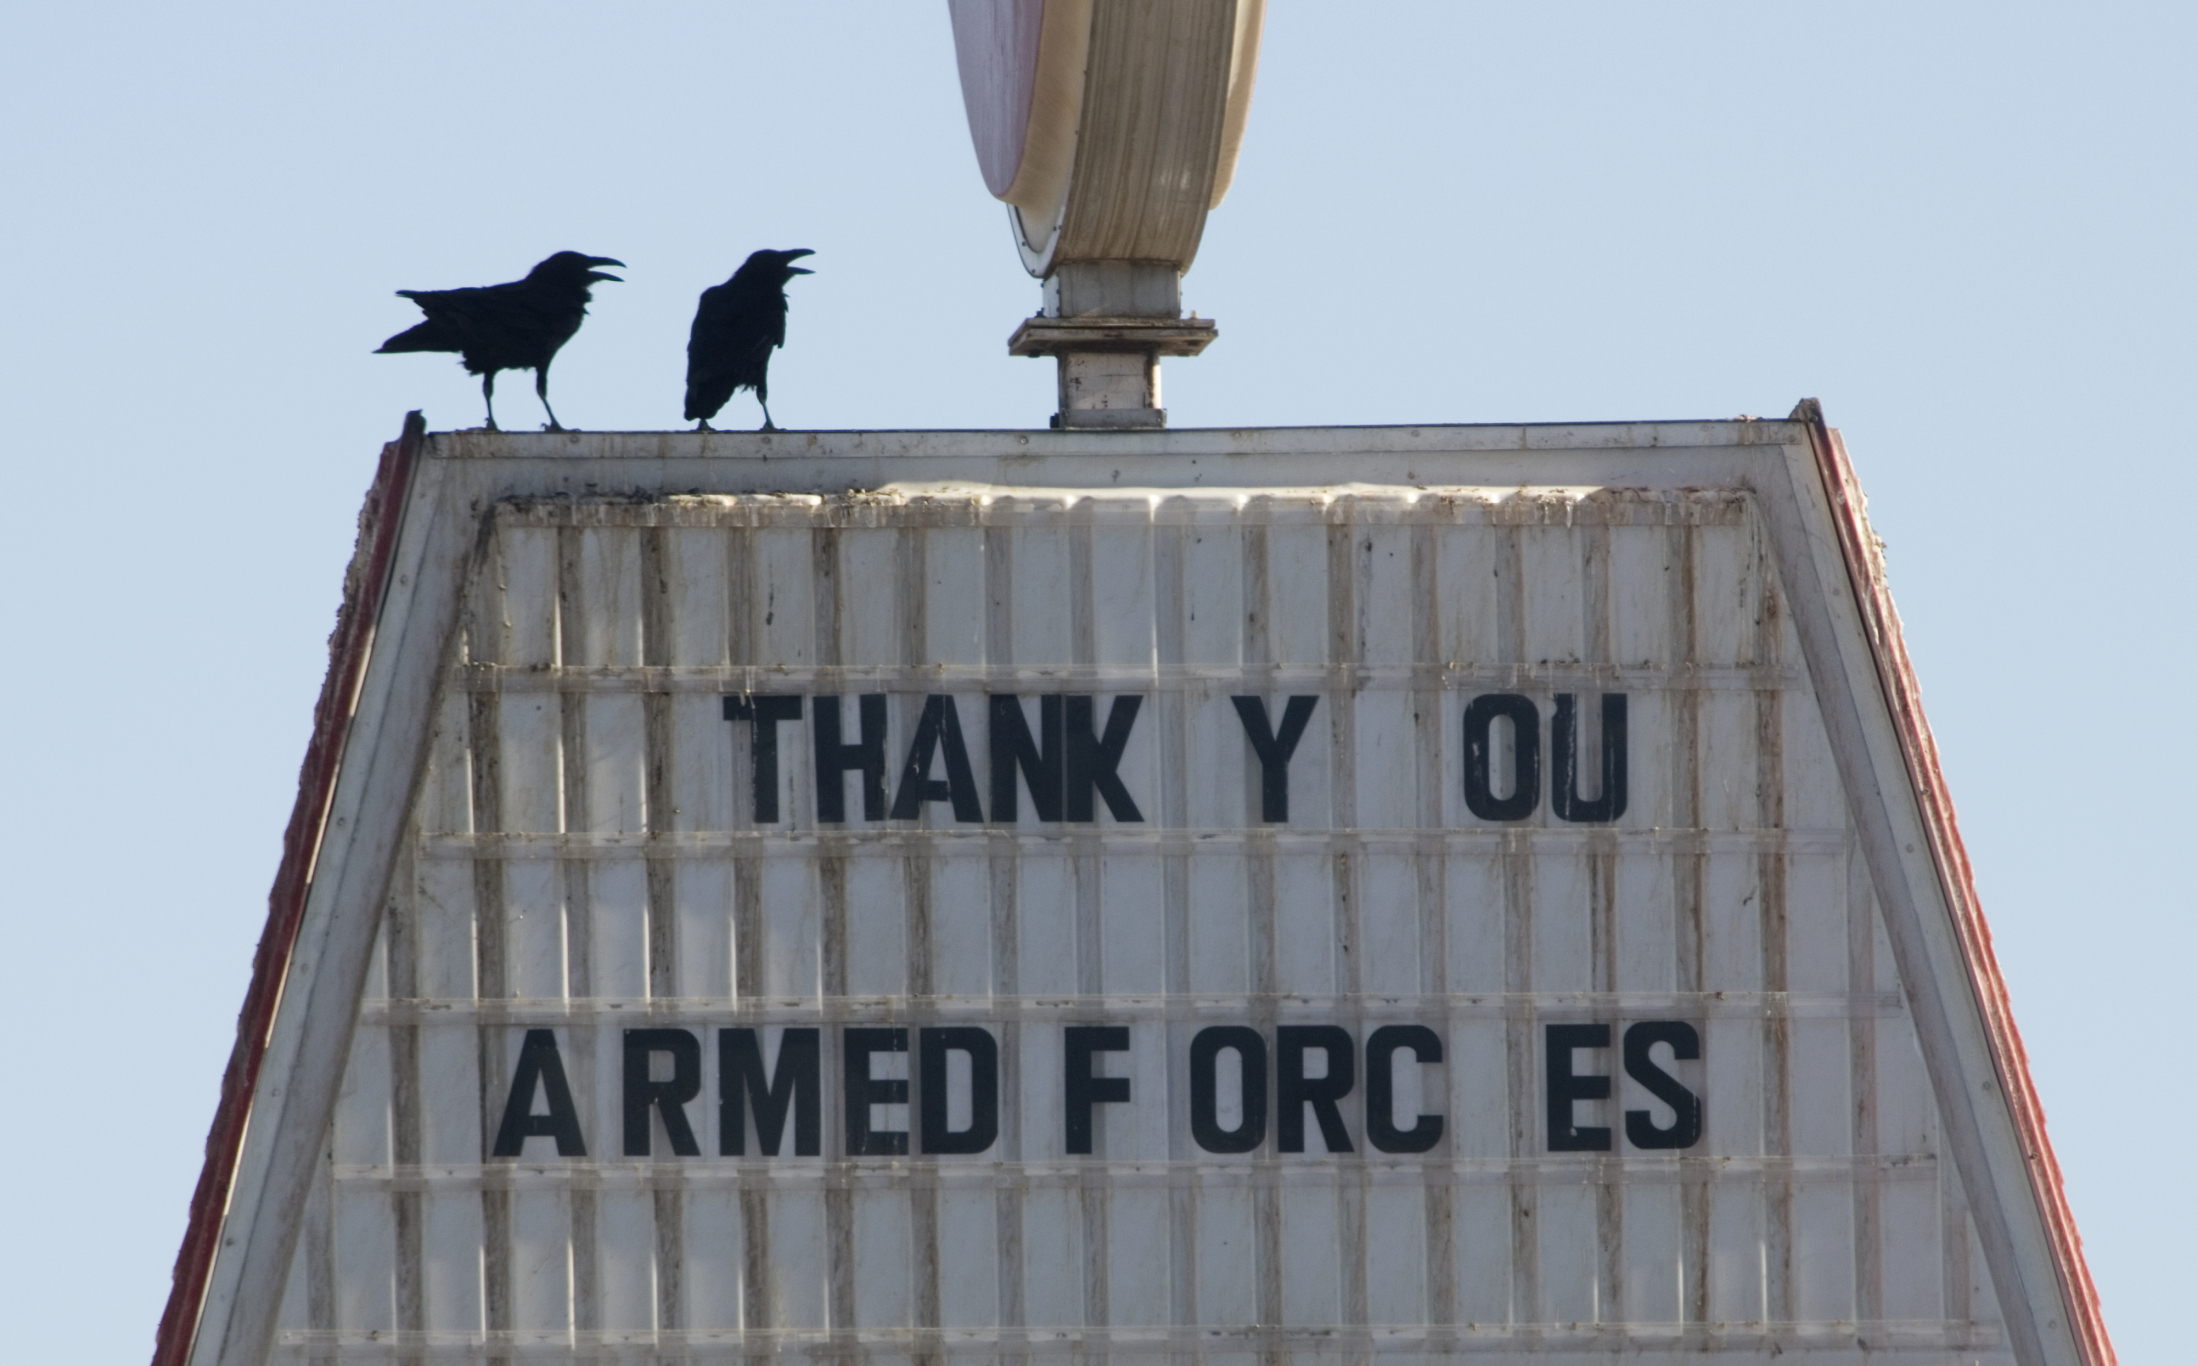 the citizen ier moral risk and the modern military at a truck stop in california a sign signals support for u s forces in the war 2006getty